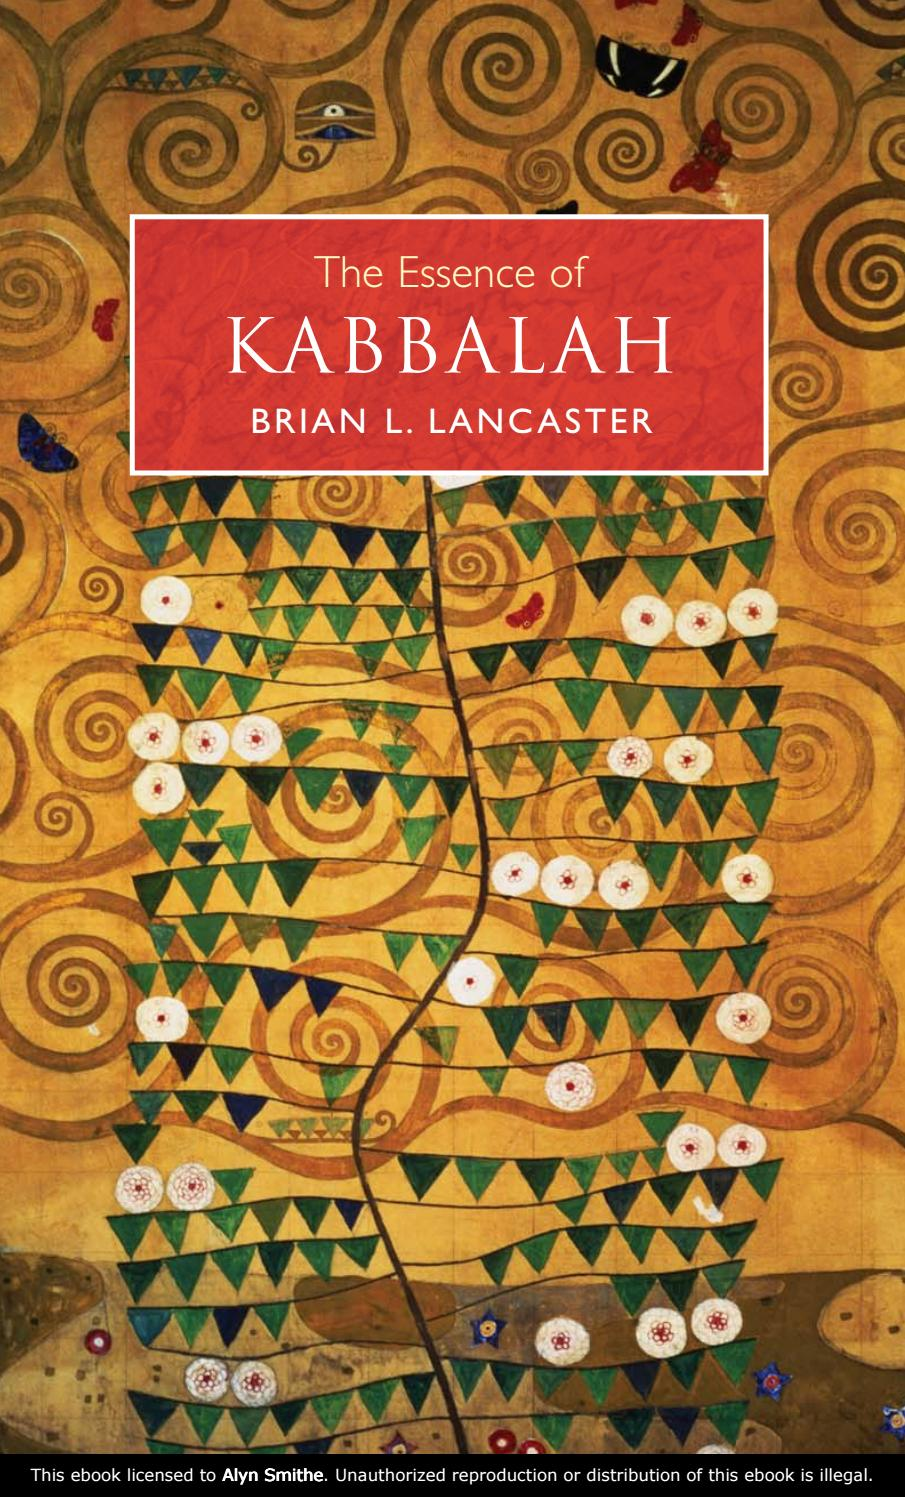 The Essence of Kabbalah by Brian L  Lancaster by Stav kesler